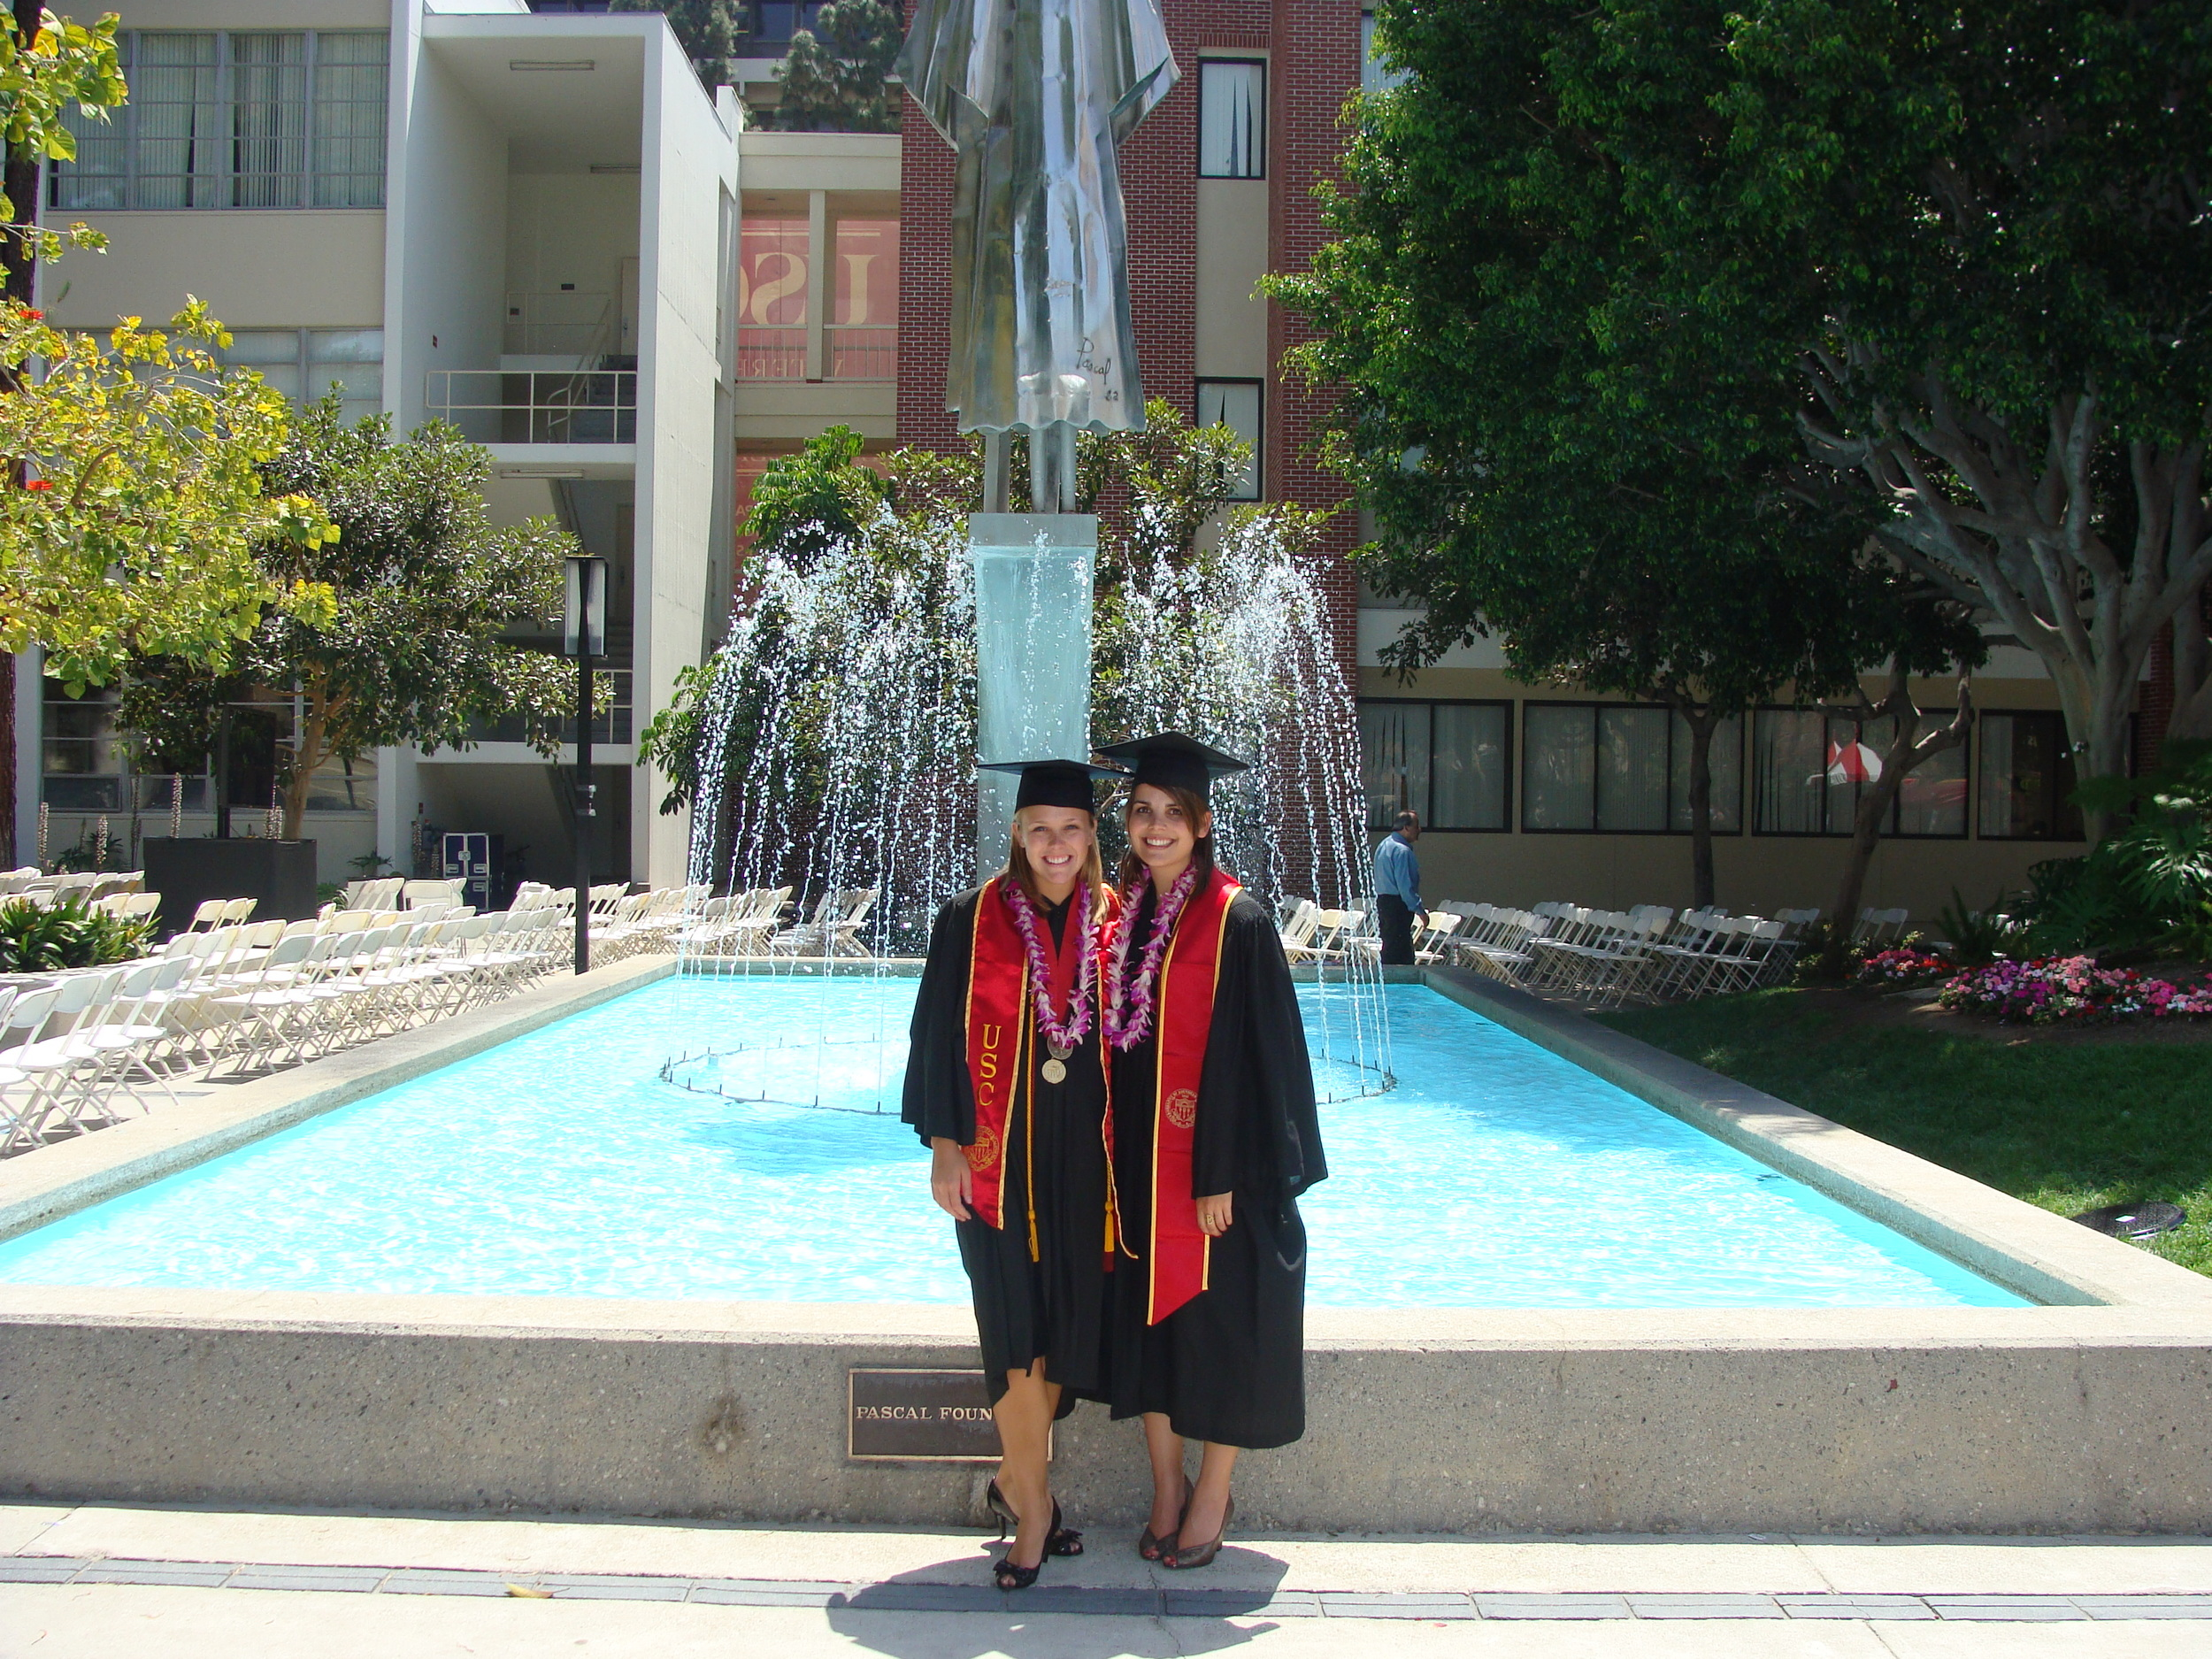 Graduation from USC - The best!